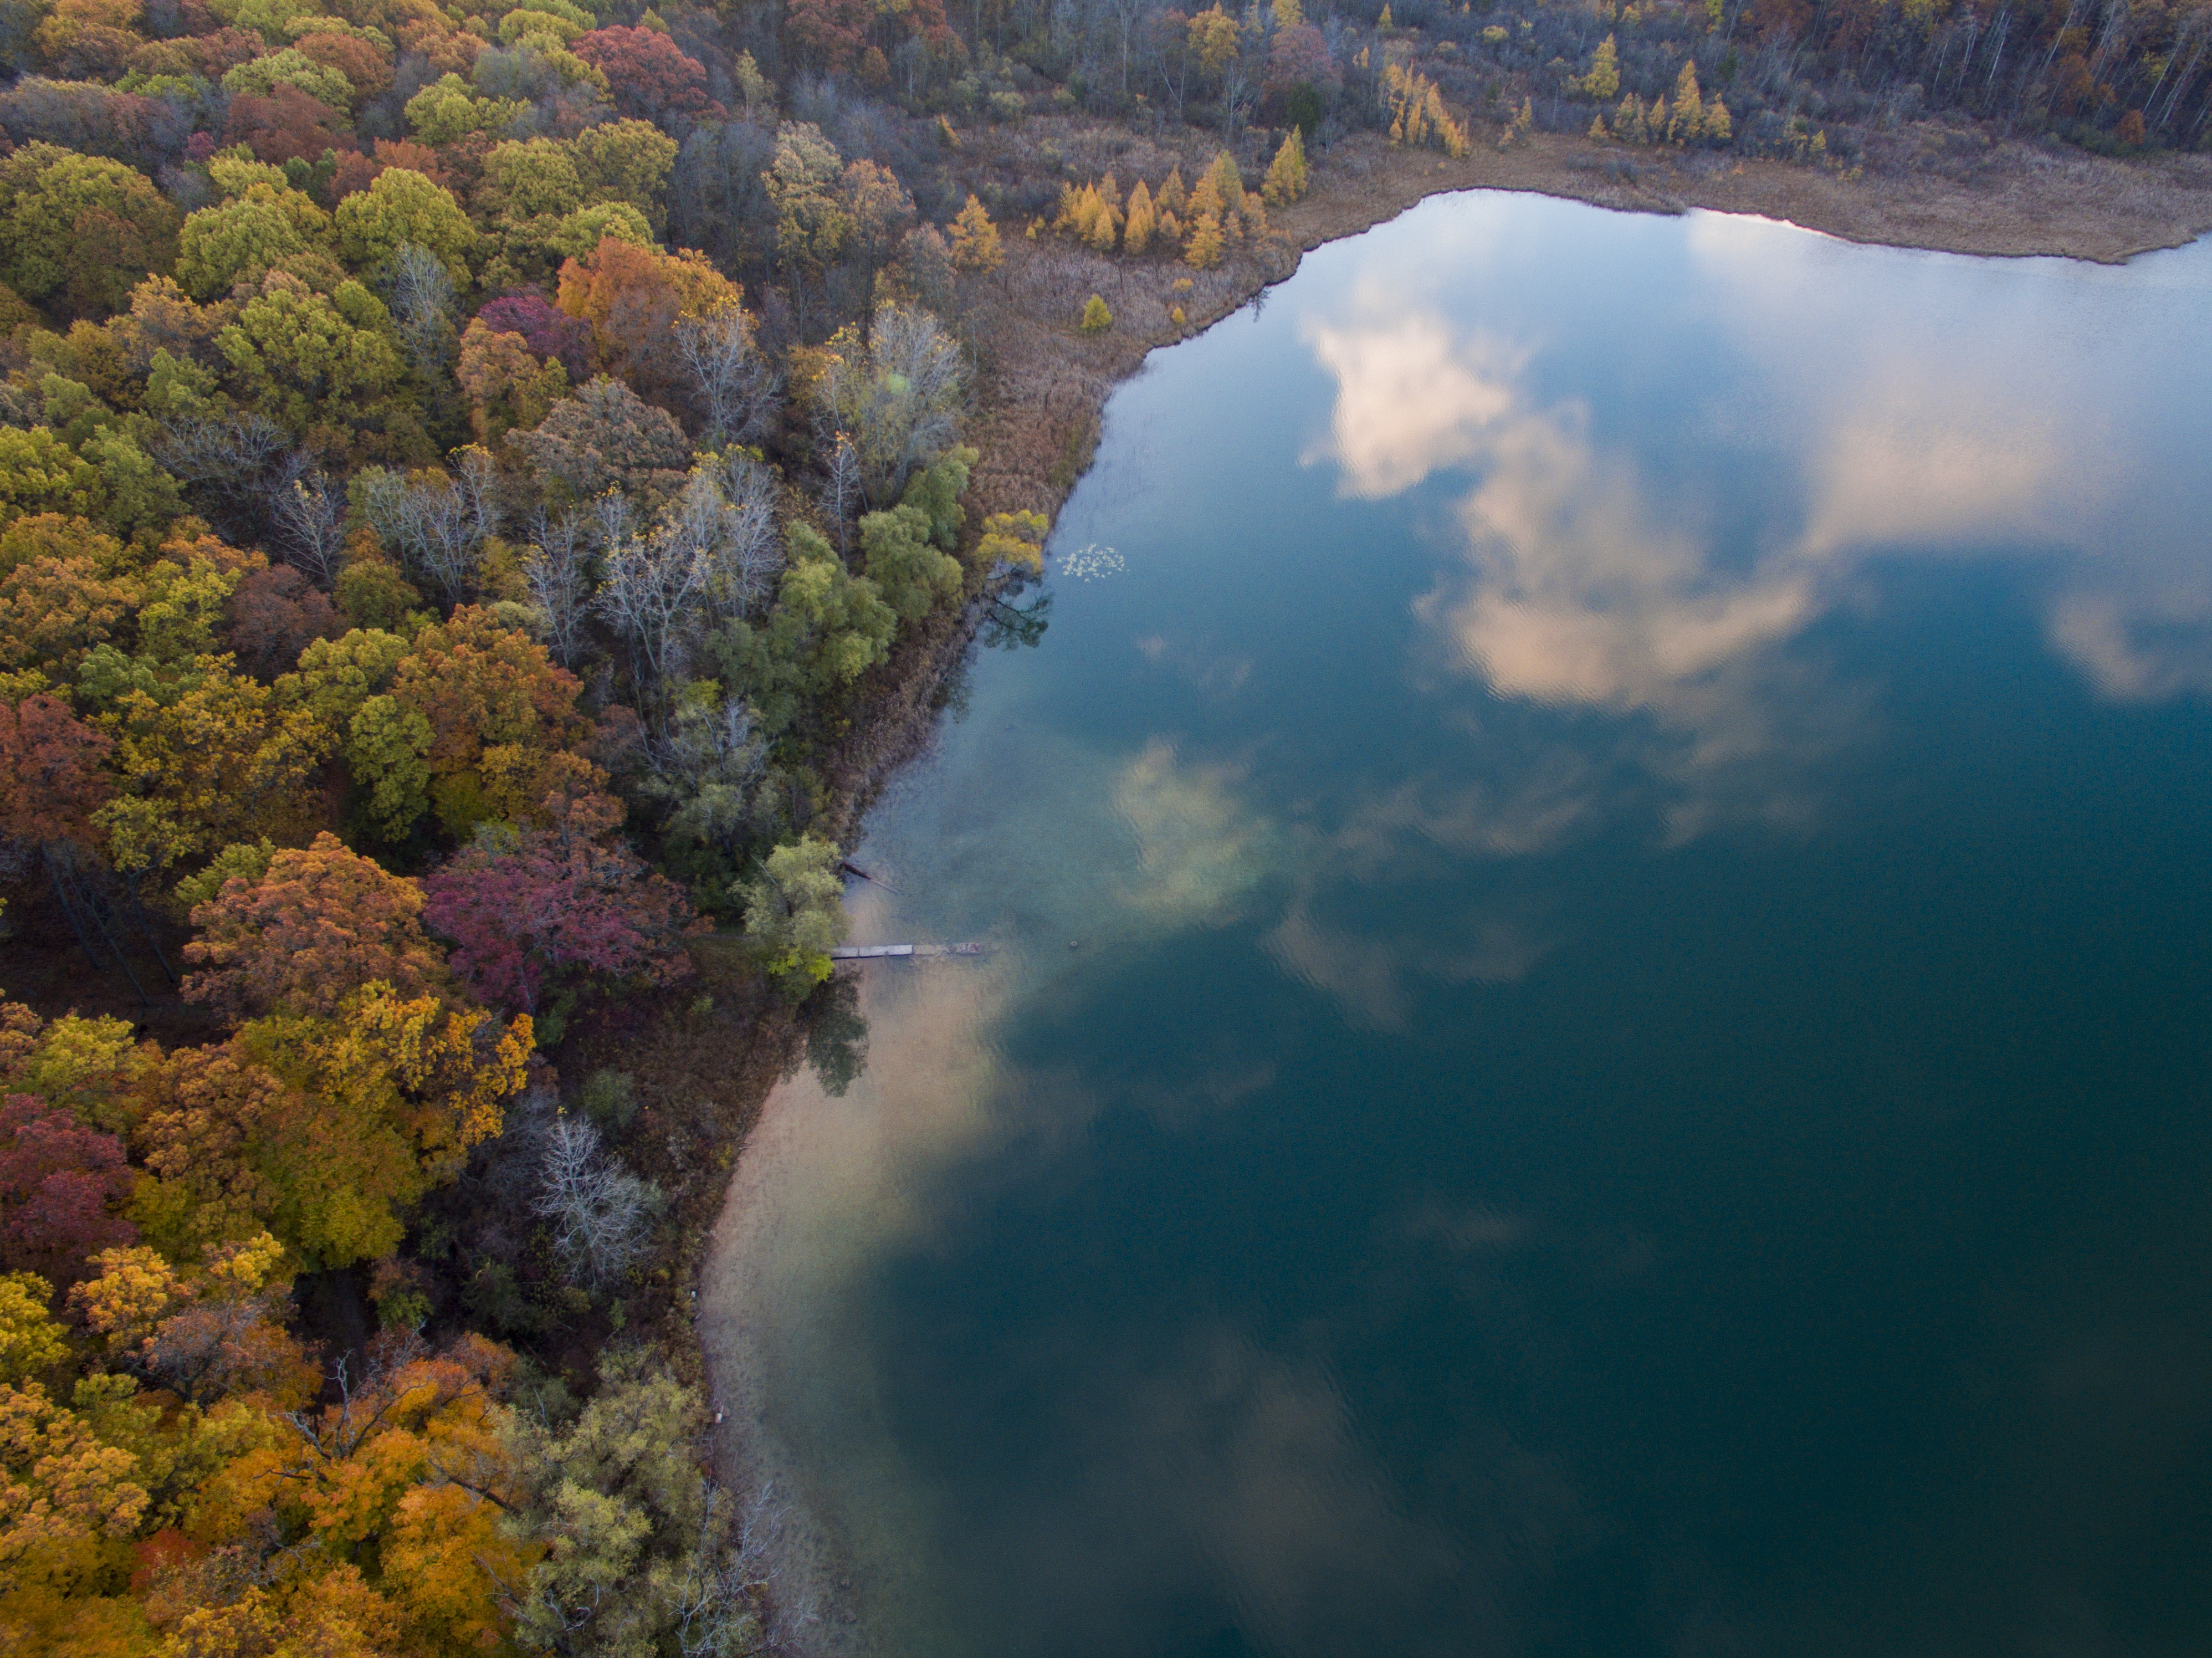 aerial photography of tree near body of water